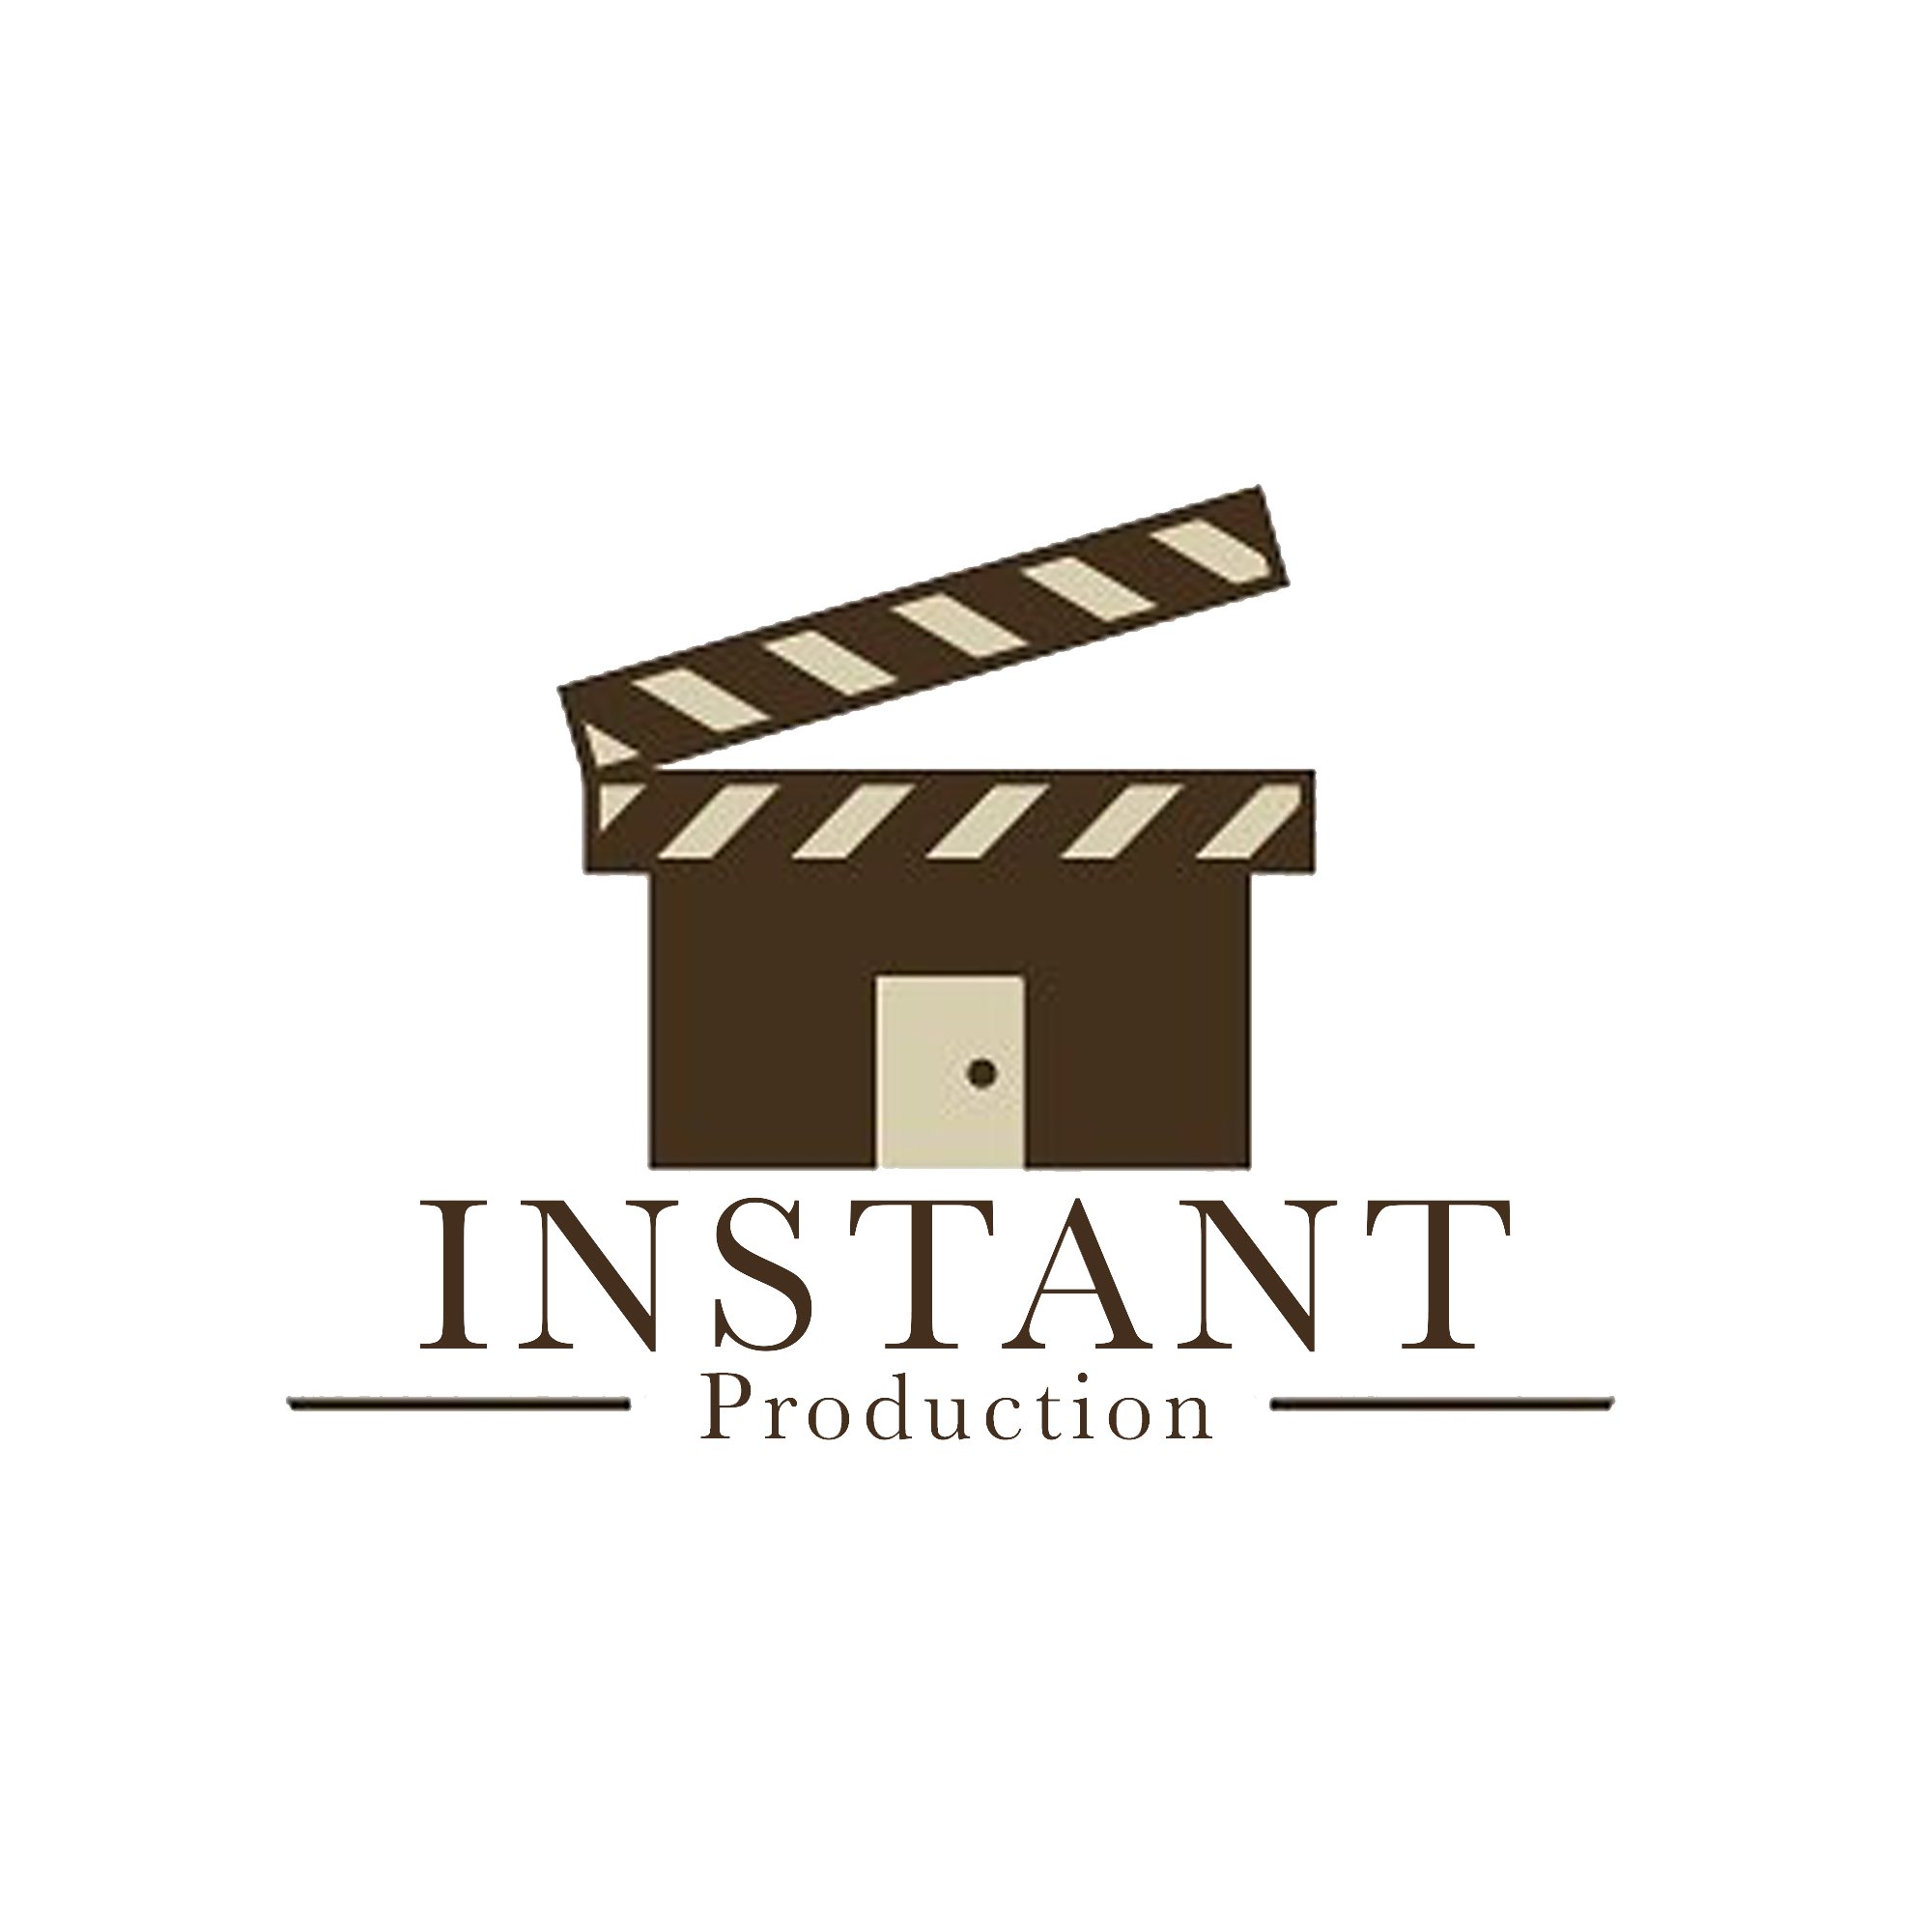 Instant Production